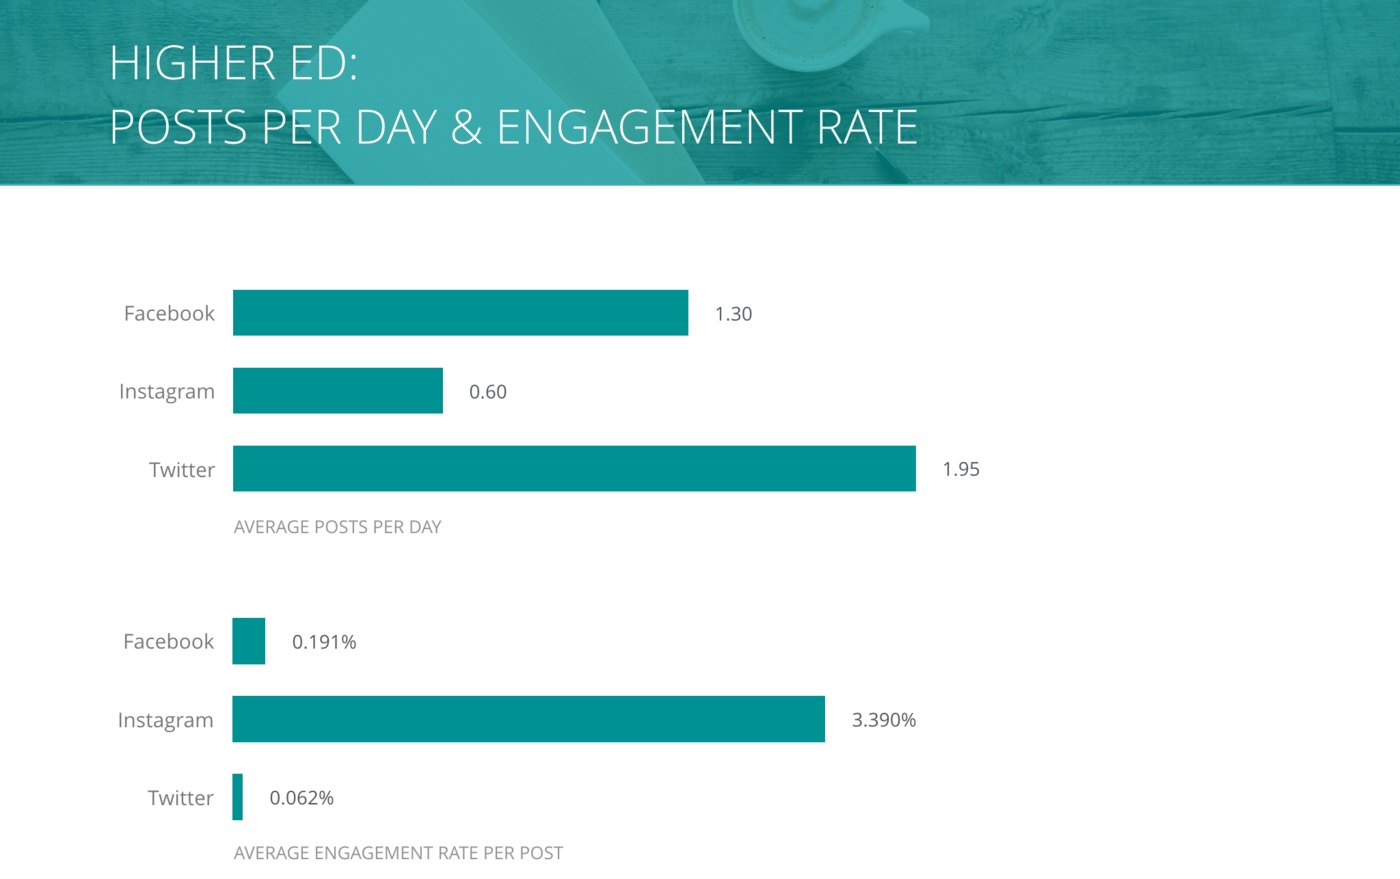 slide for Posts per Day and Engagement Rate per Post, Higher Ed